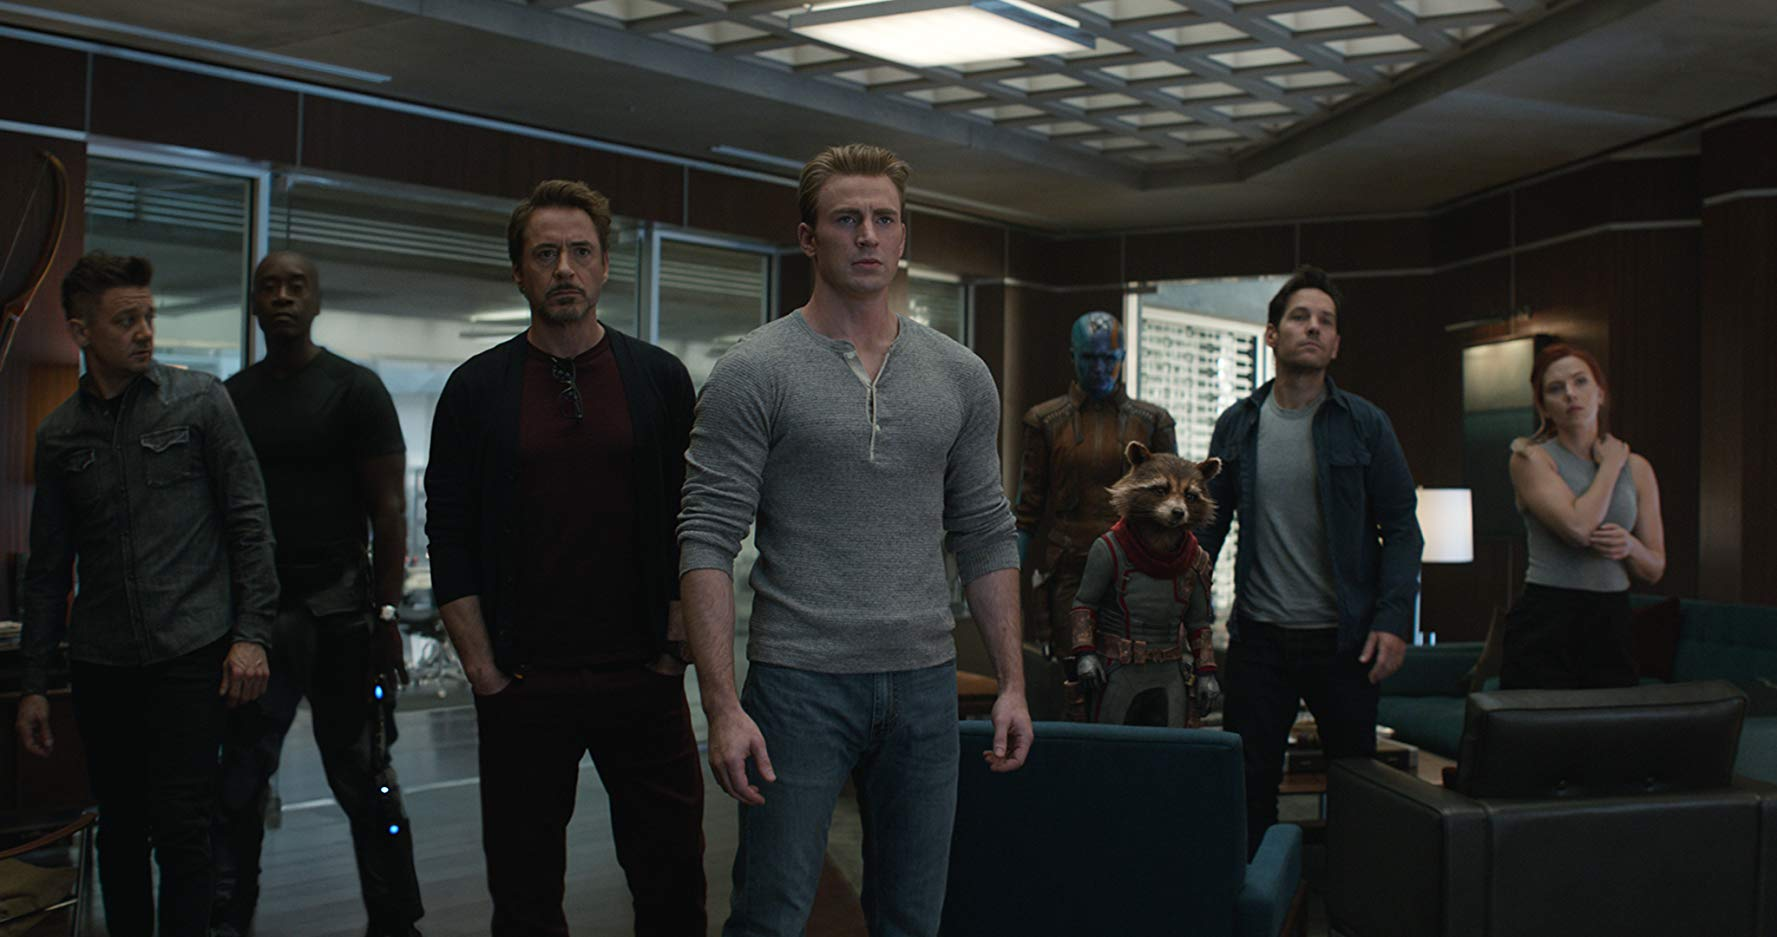 Avengers: Endgame – The most fun you can have responsibly in a cinema